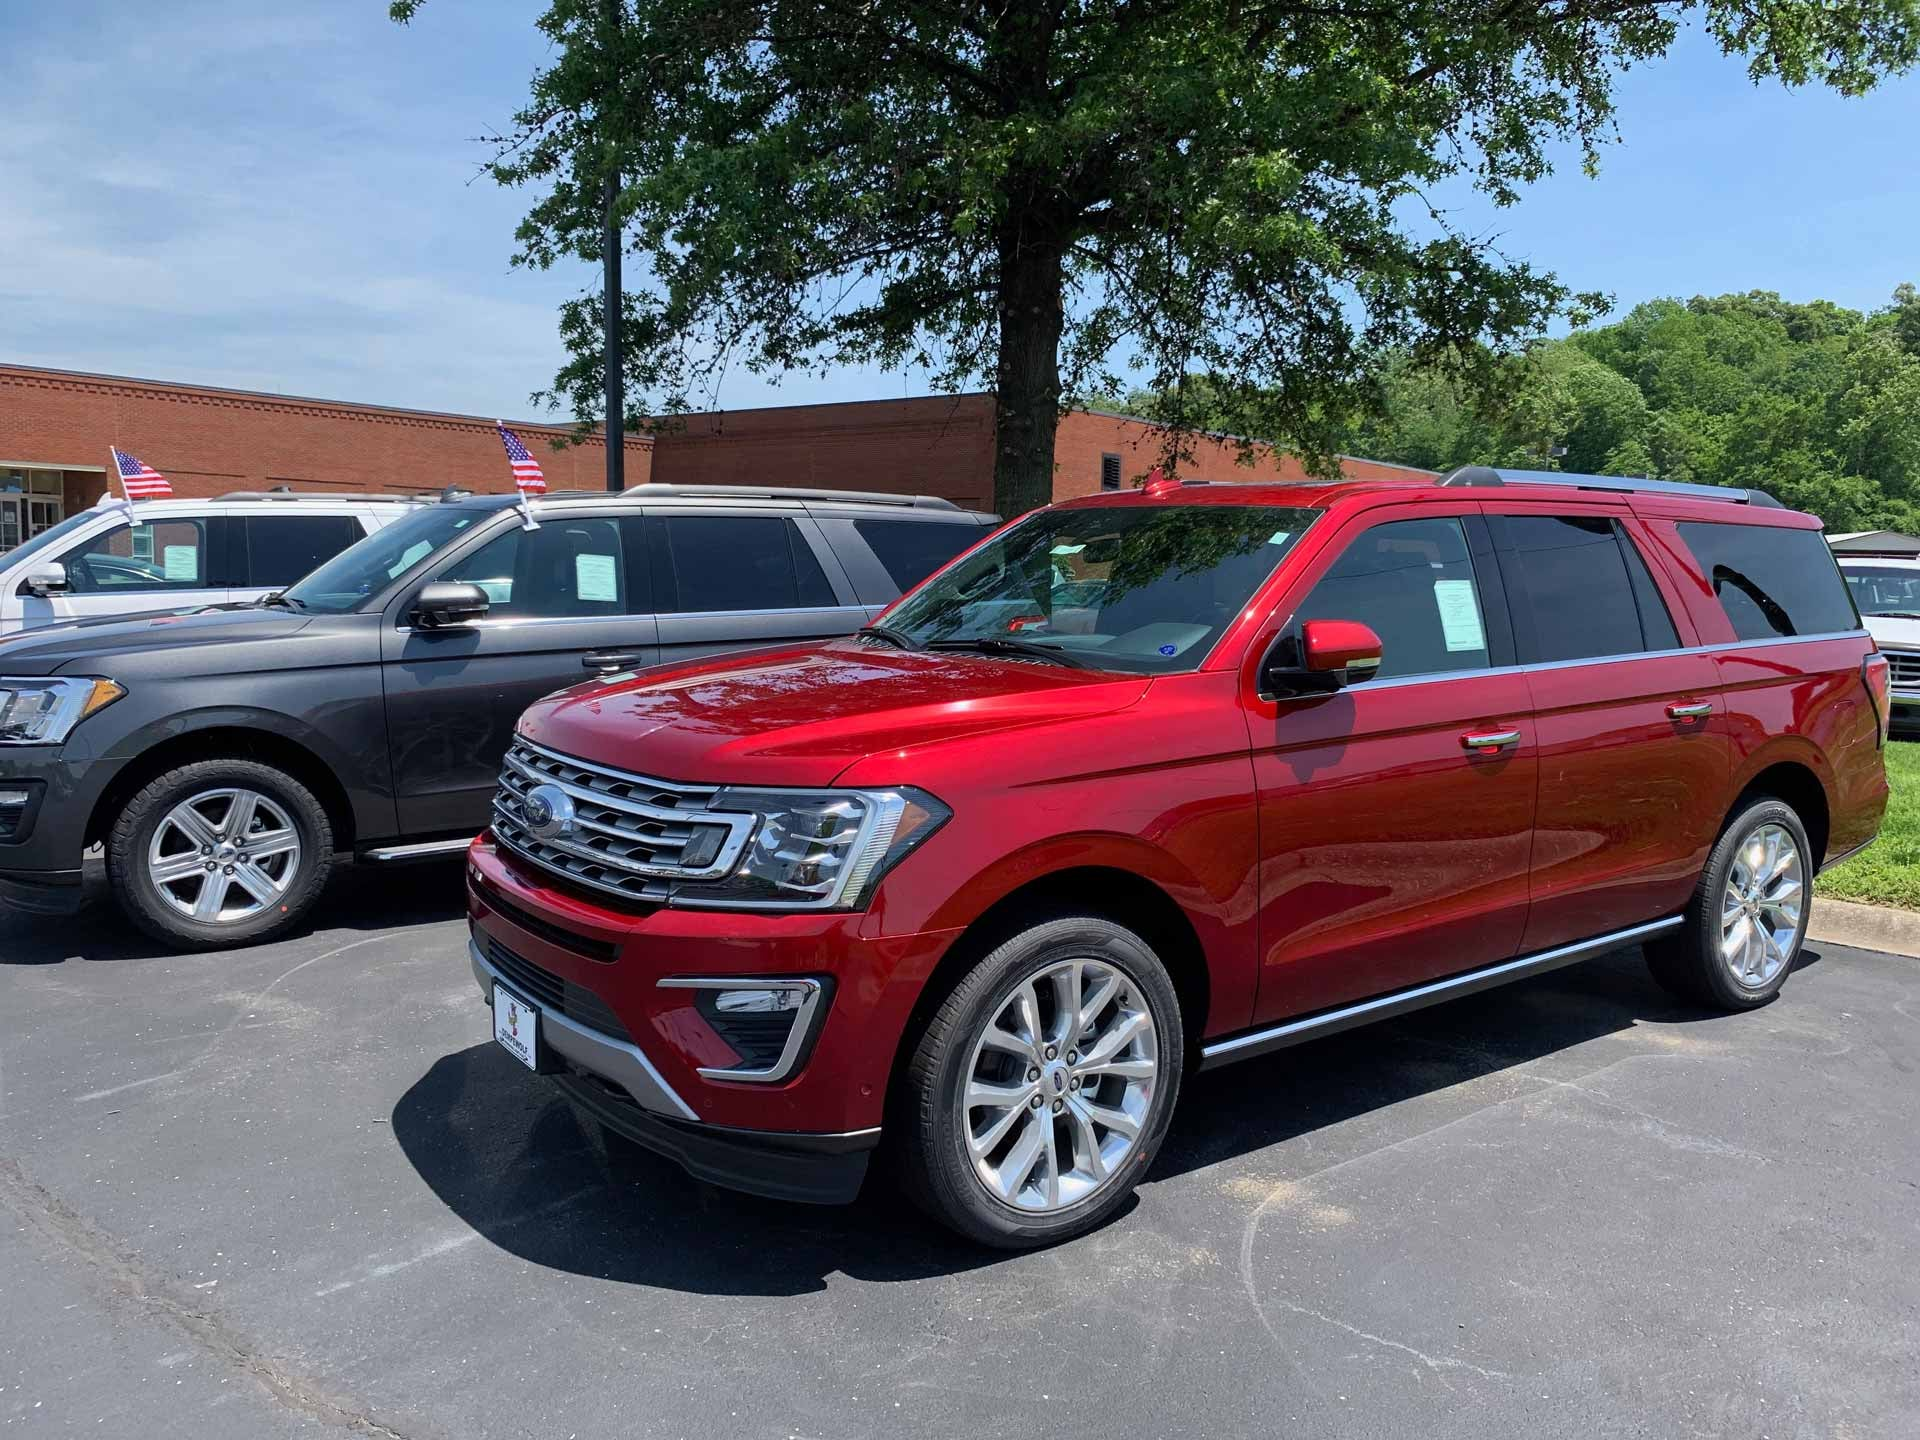 Ford Dealership Evansville >> Ford Dealer In Henderson Ky Used Cars Henderson Henderson Ford